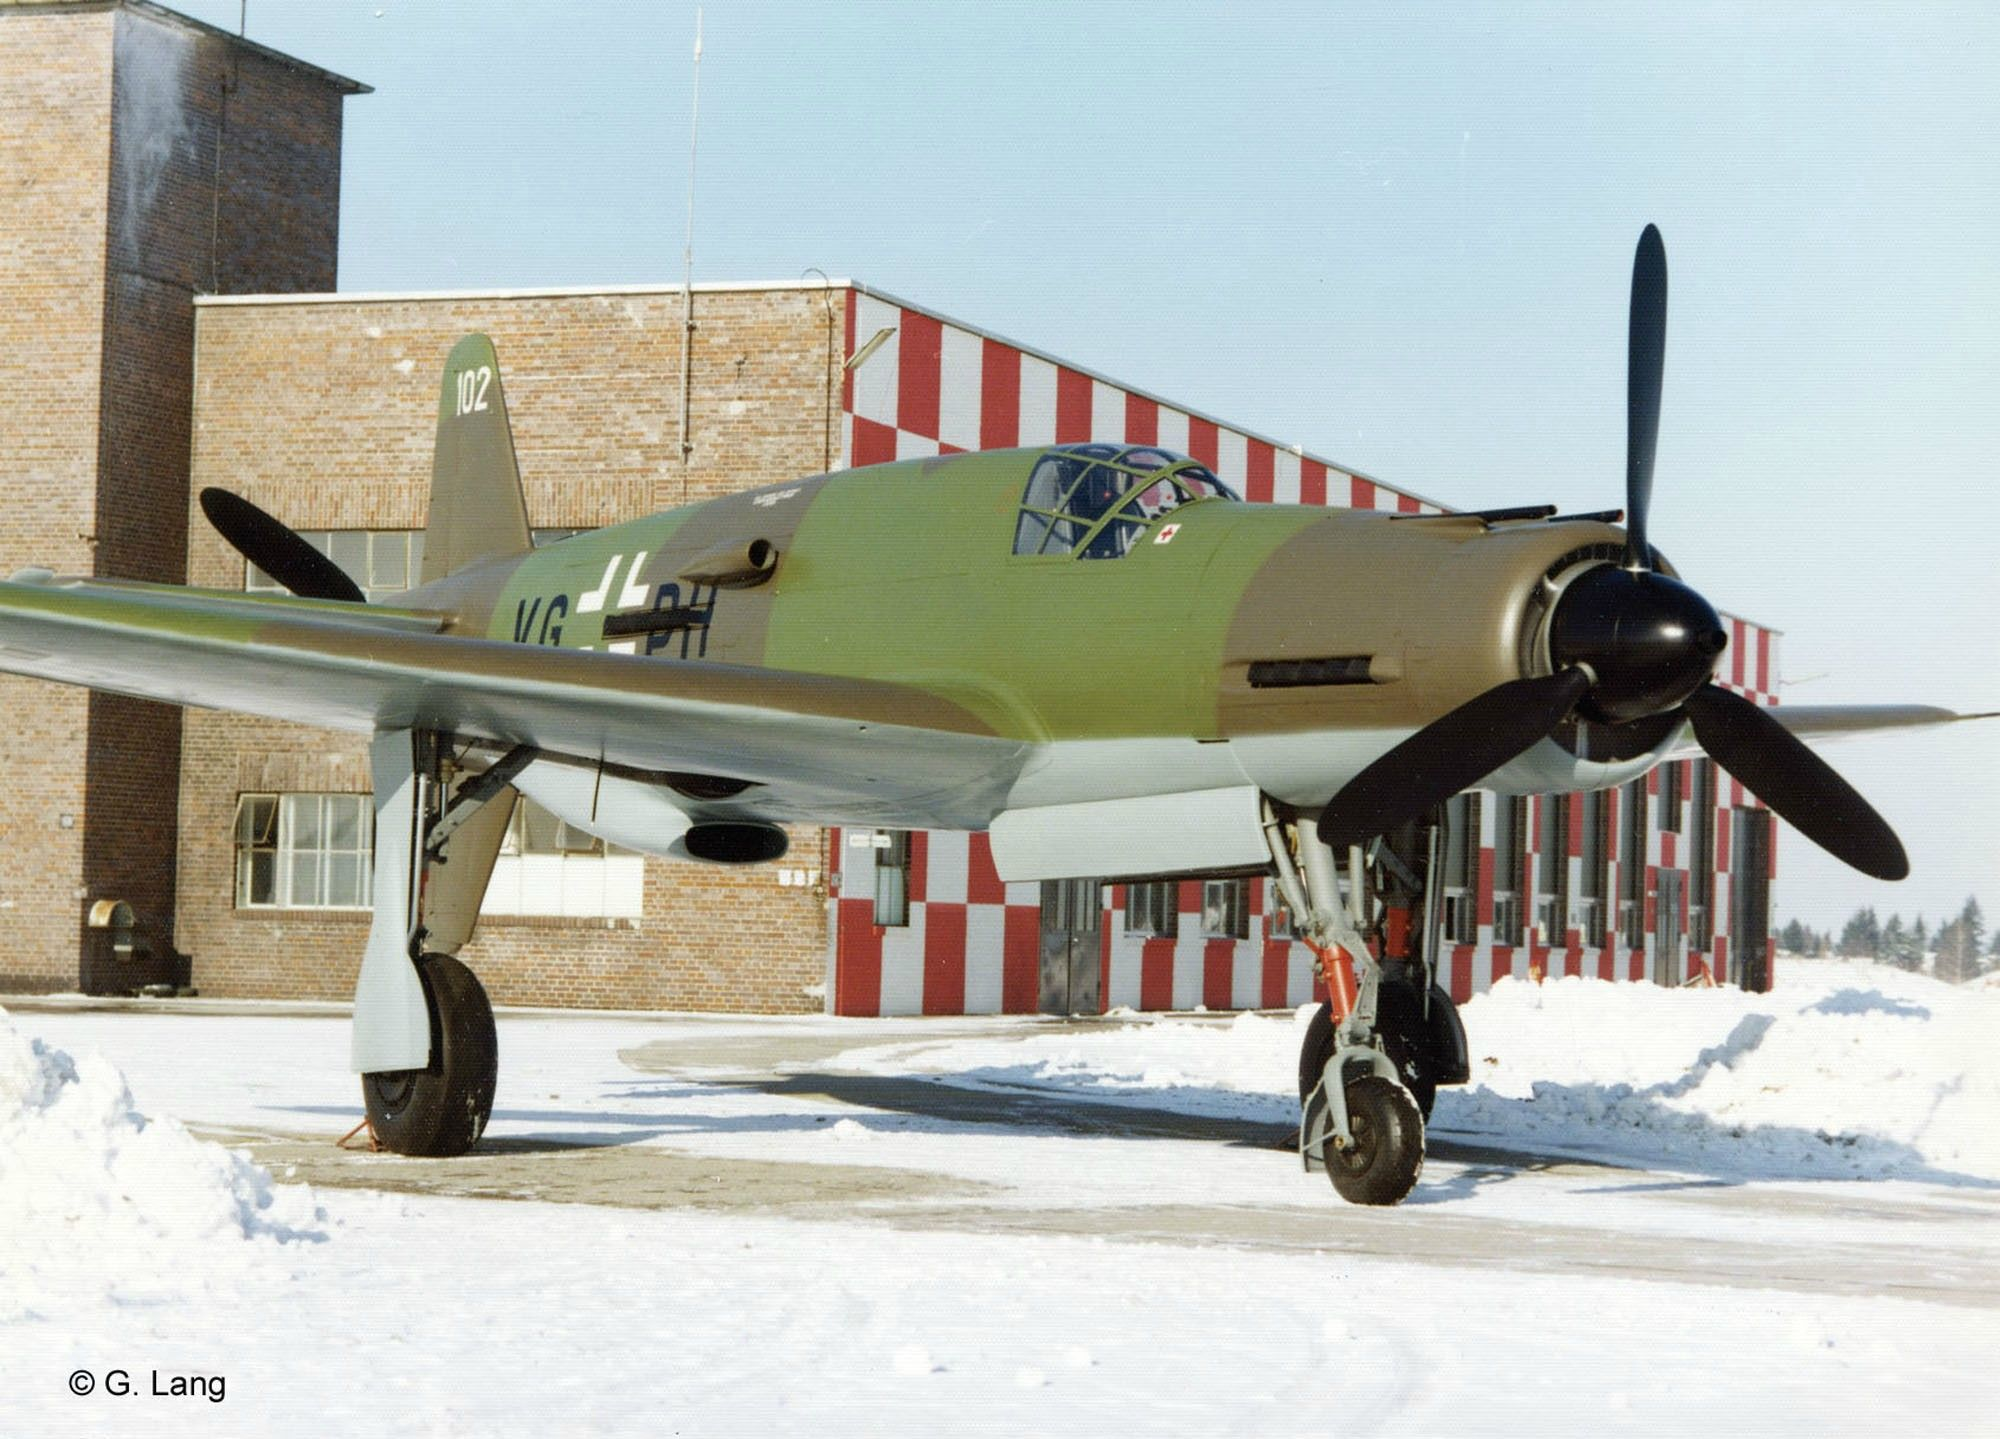 One of the fastest piston-engined aircraft ever, propelled from the front and the back - The Dornier Do 335 Pfeil